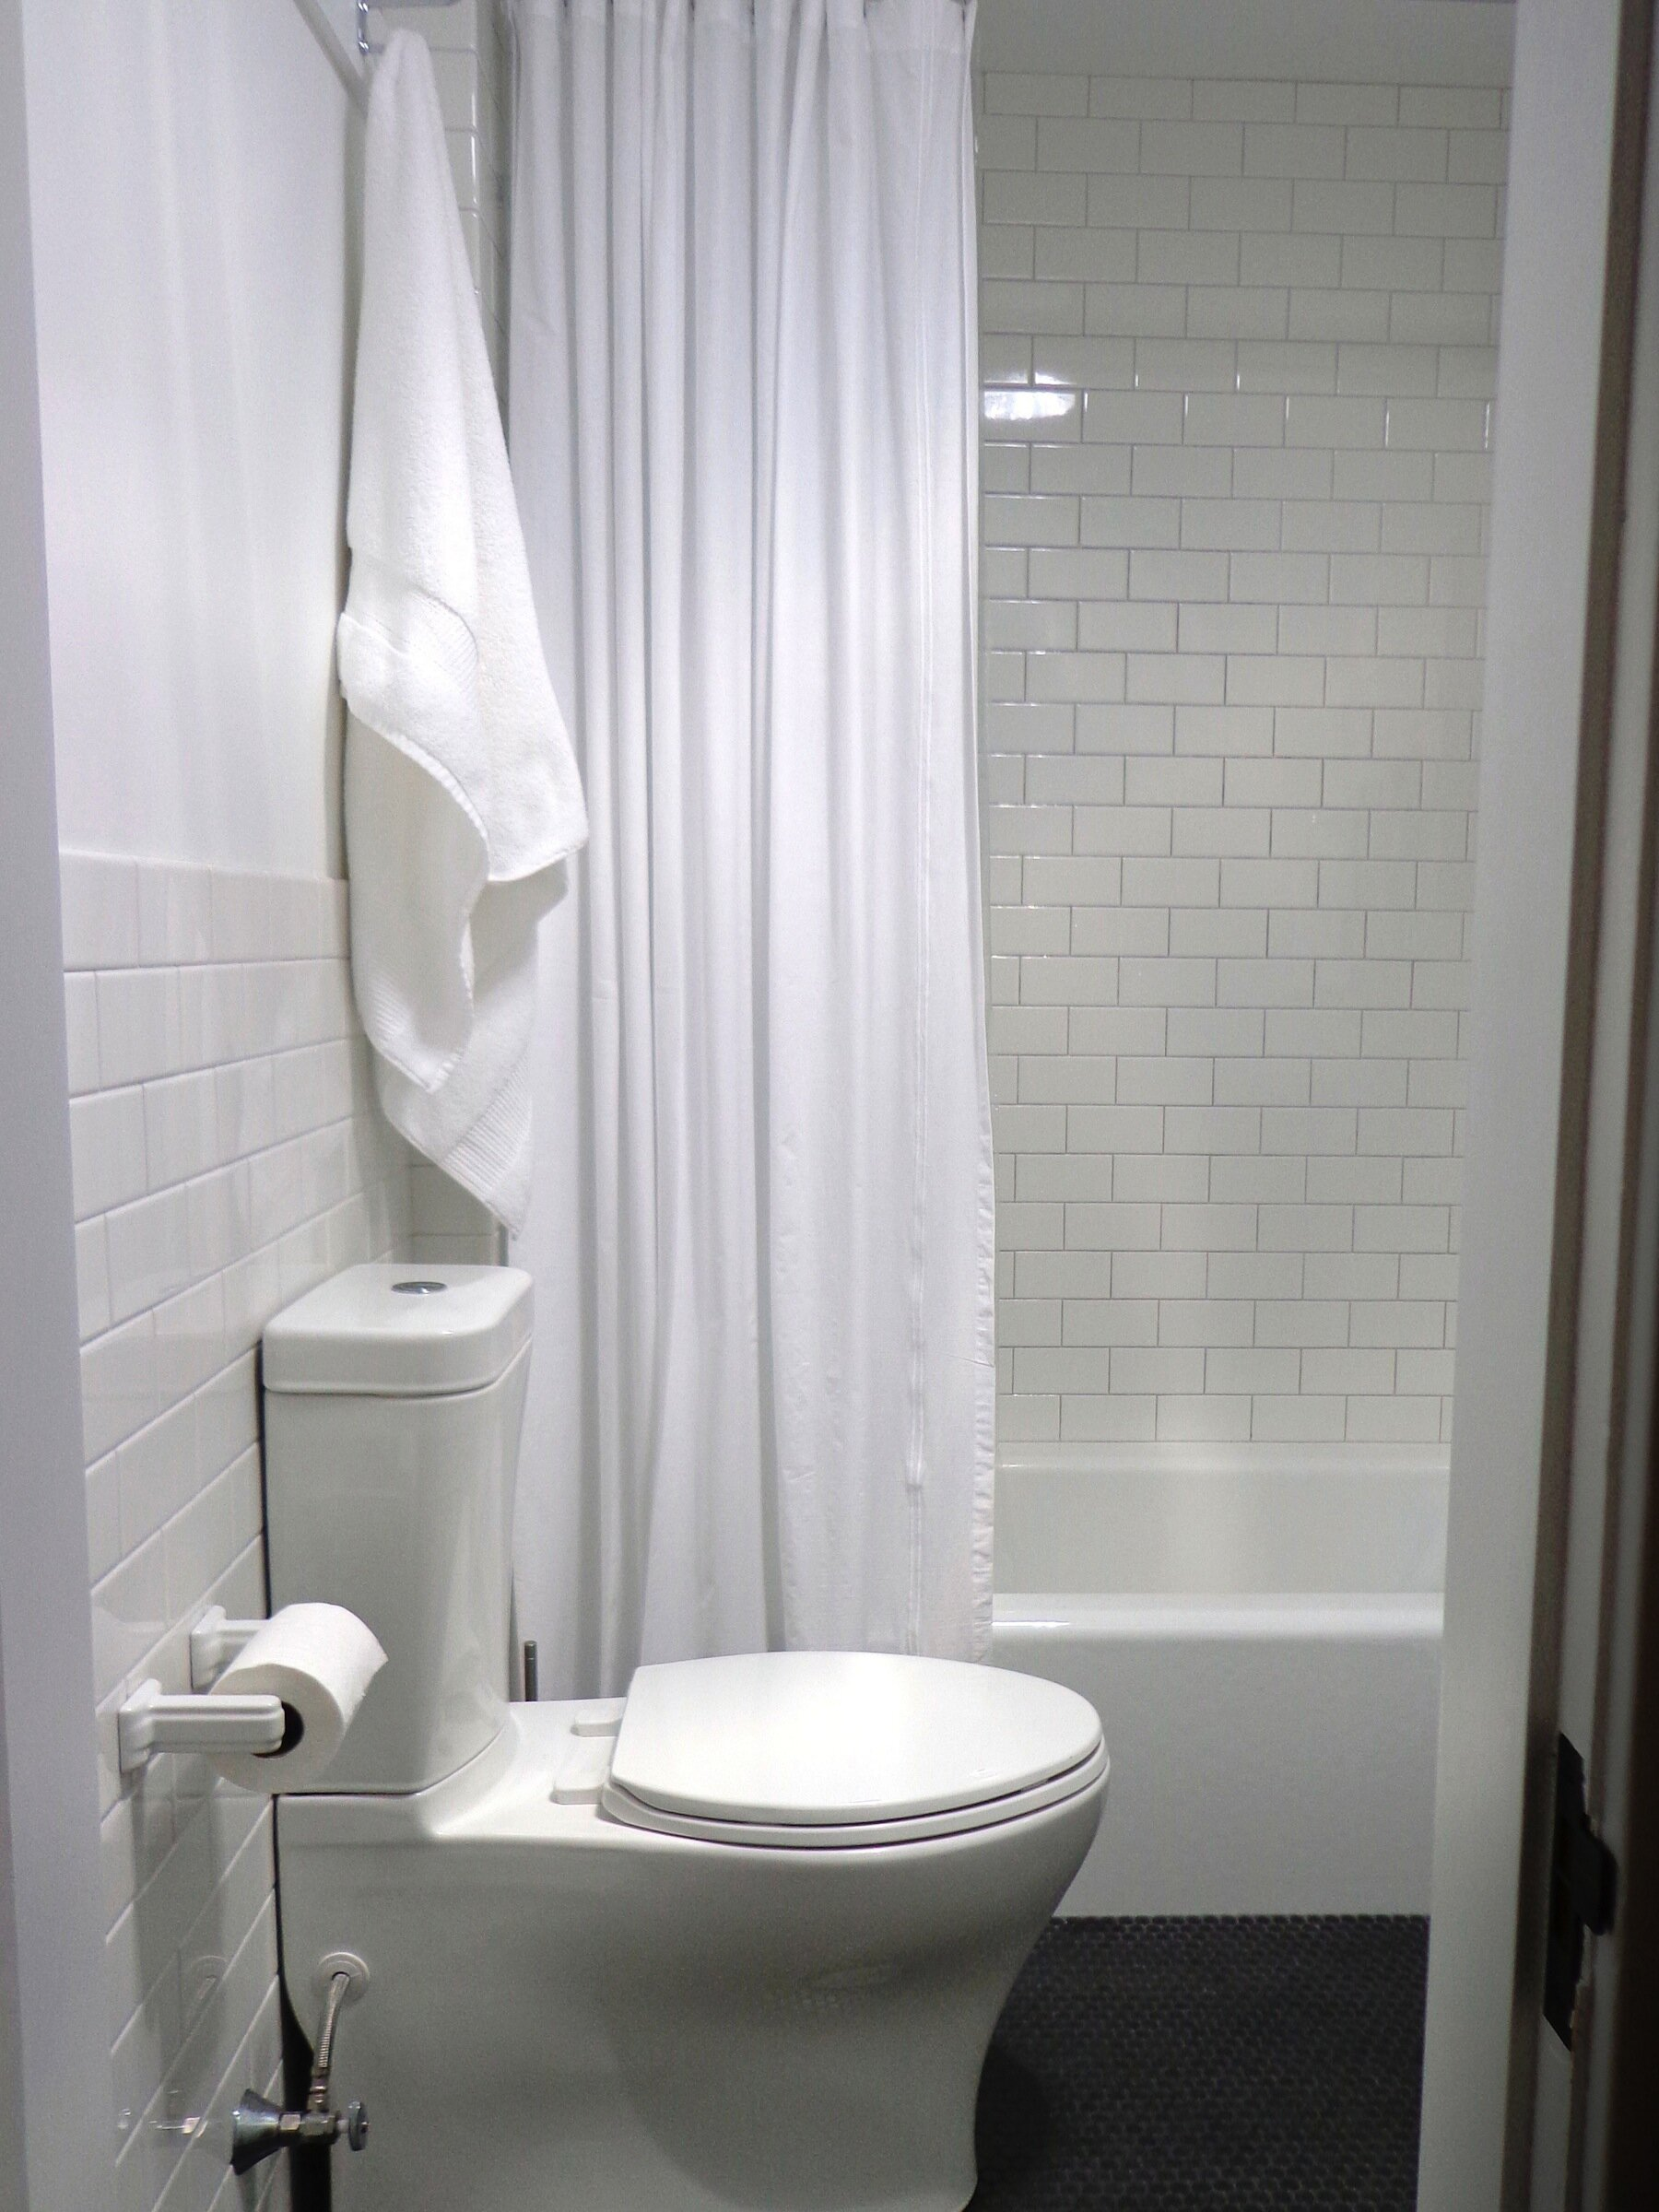 Curtain Interesting Bathroom Decor Ideas With Restoration Hardware Shower Curtain